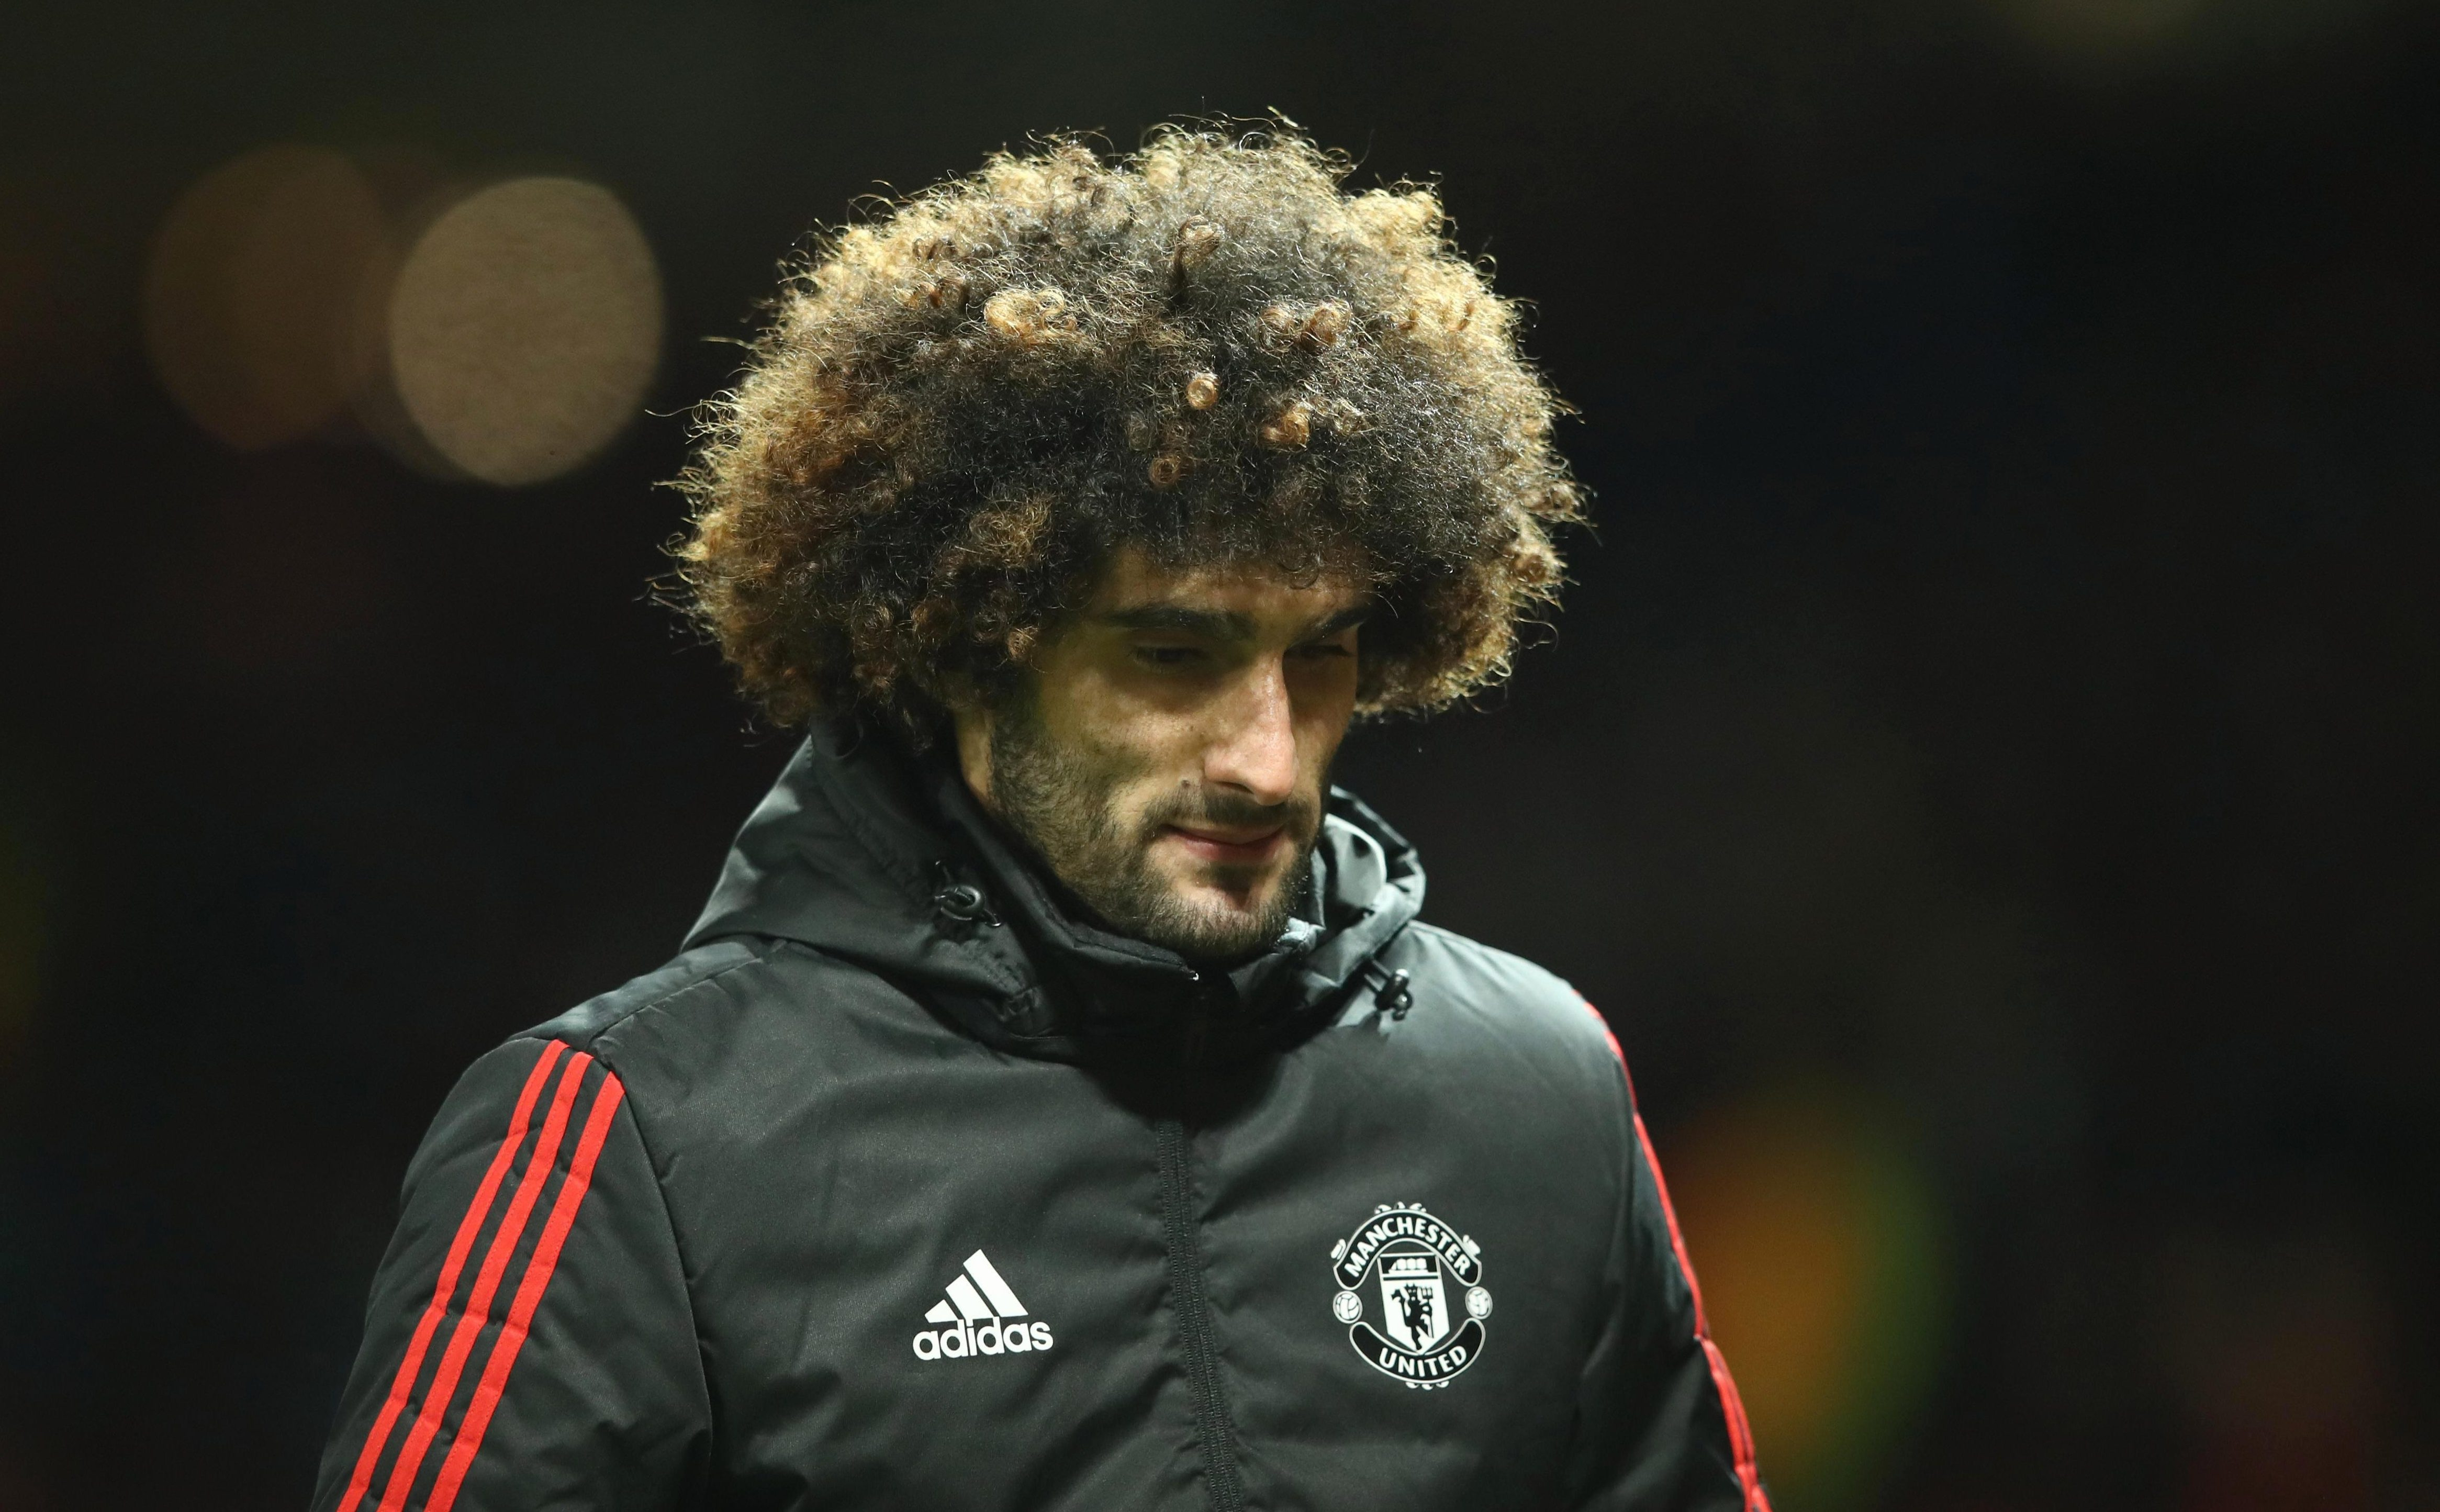 Marouane Fellaini has refused to extend his current contract that expires at the end of the season